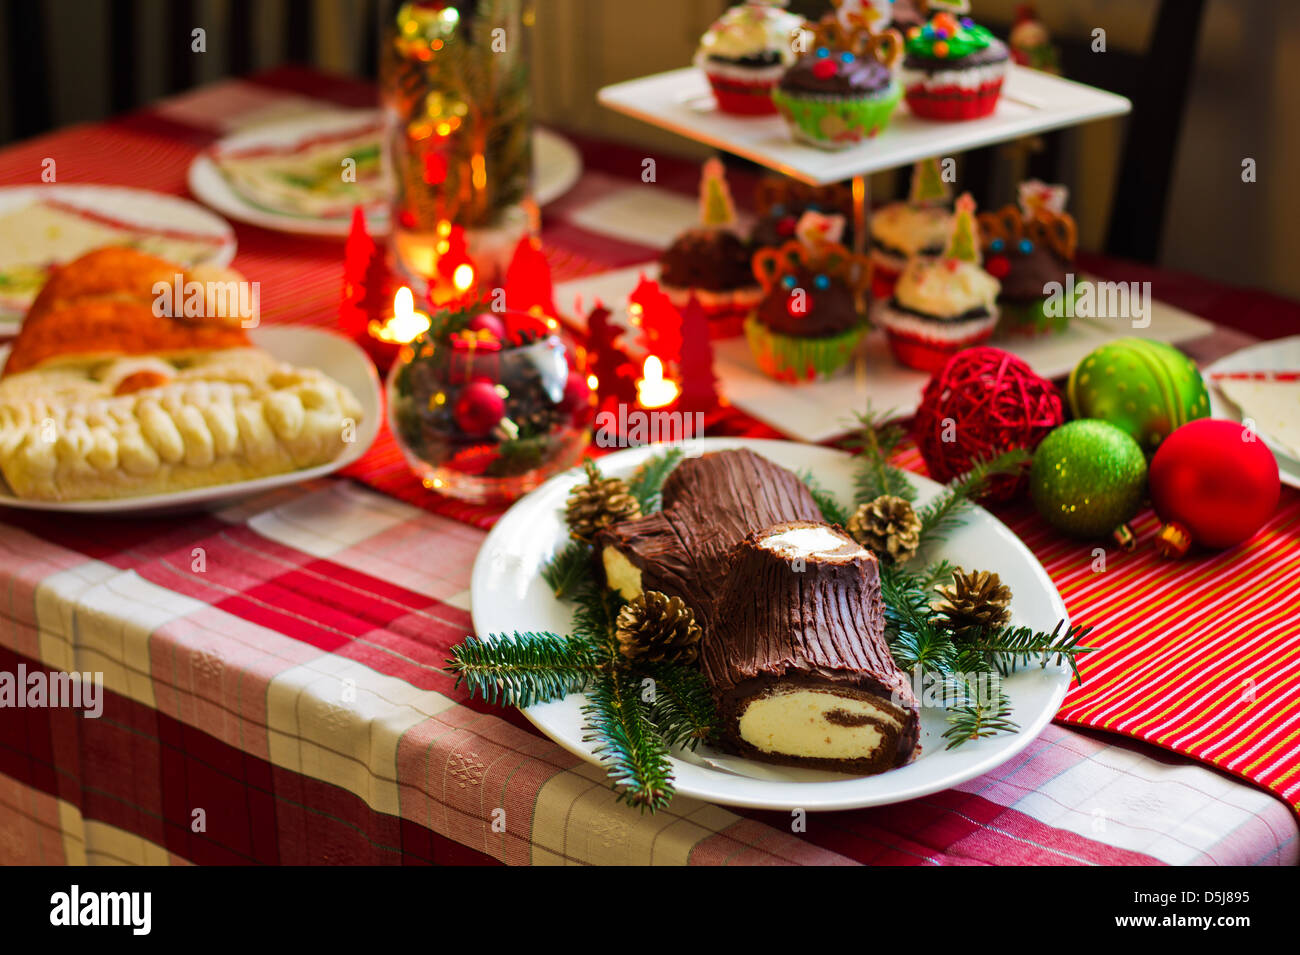 Christmas In France Food.Traditional French Christmas Table With Christmas Yule Log